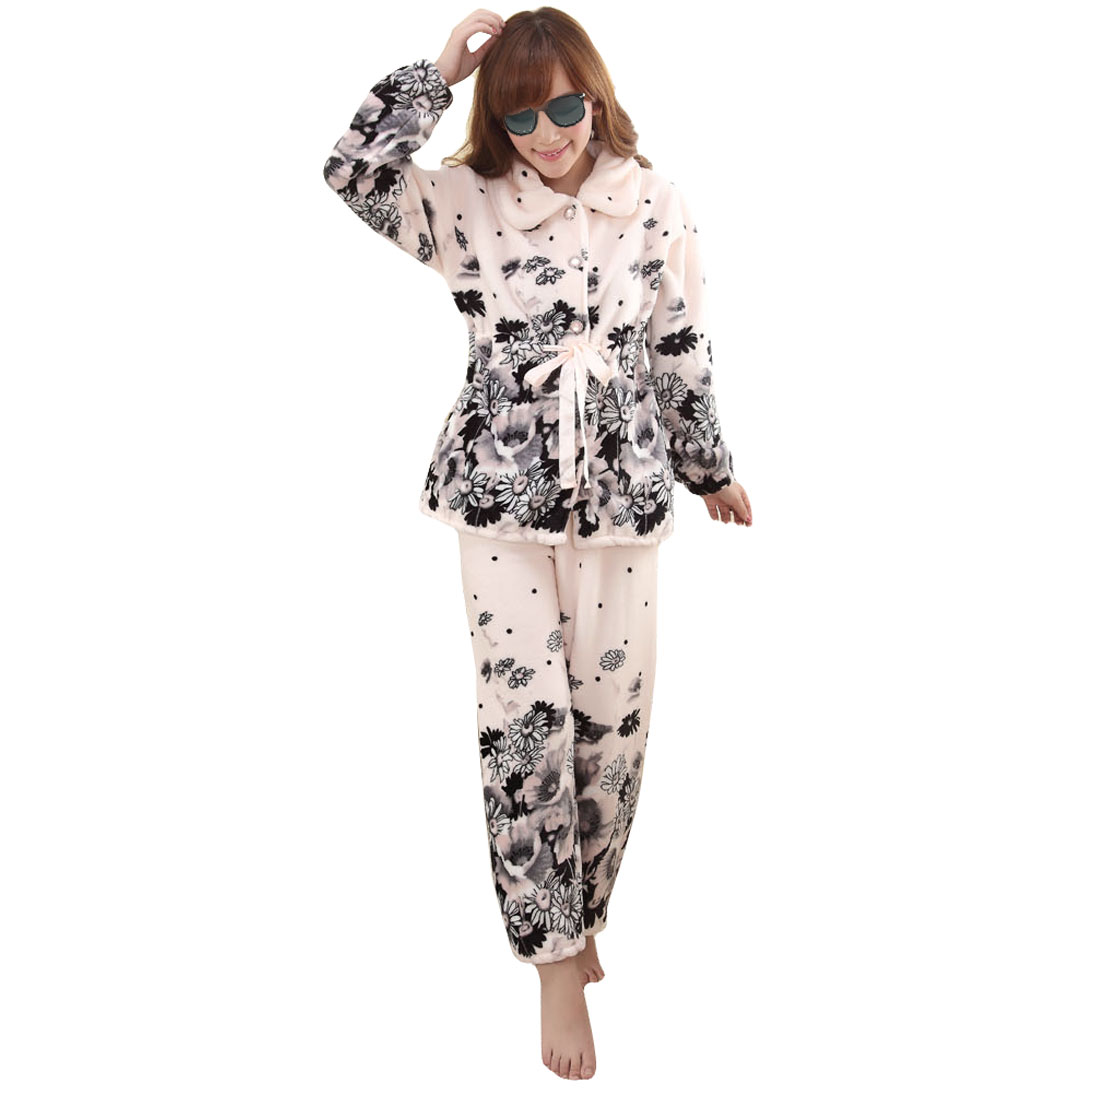 Point Neck Floral Pattern Sleep Dress Pajama Sets Pale Pink S for Ladies